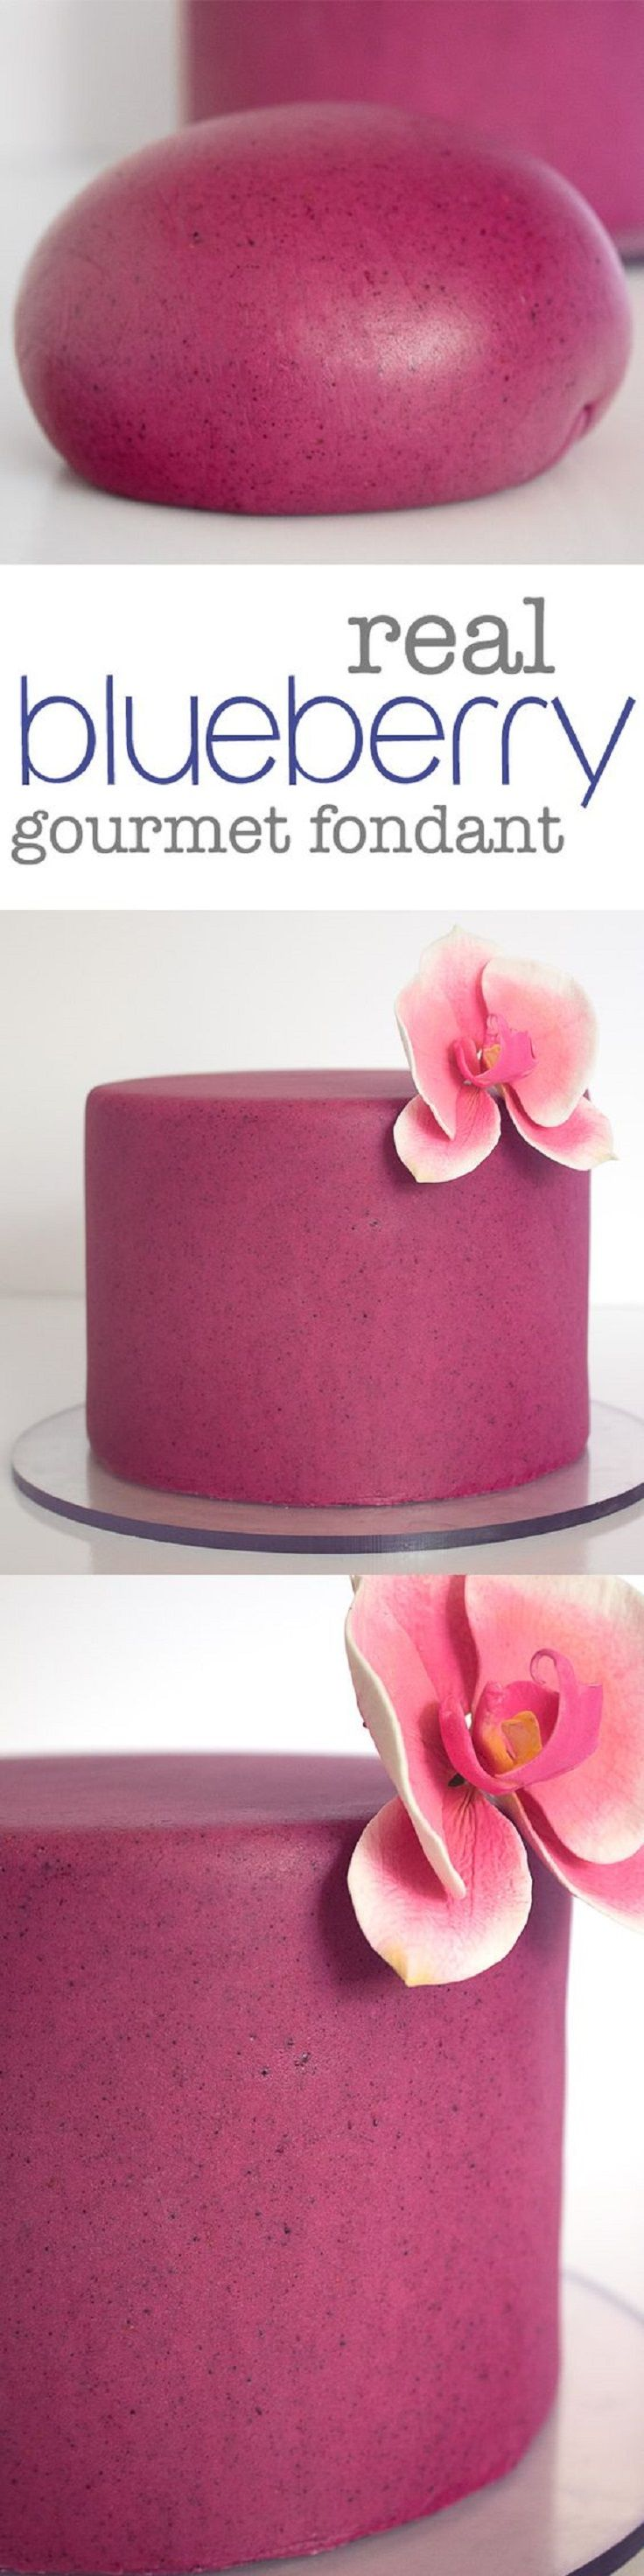 Gourmet Blueberry Almond Fondant - 17 Amazing Cake Decorating Ideas, Tips and Tricks That'll Make You A Pro